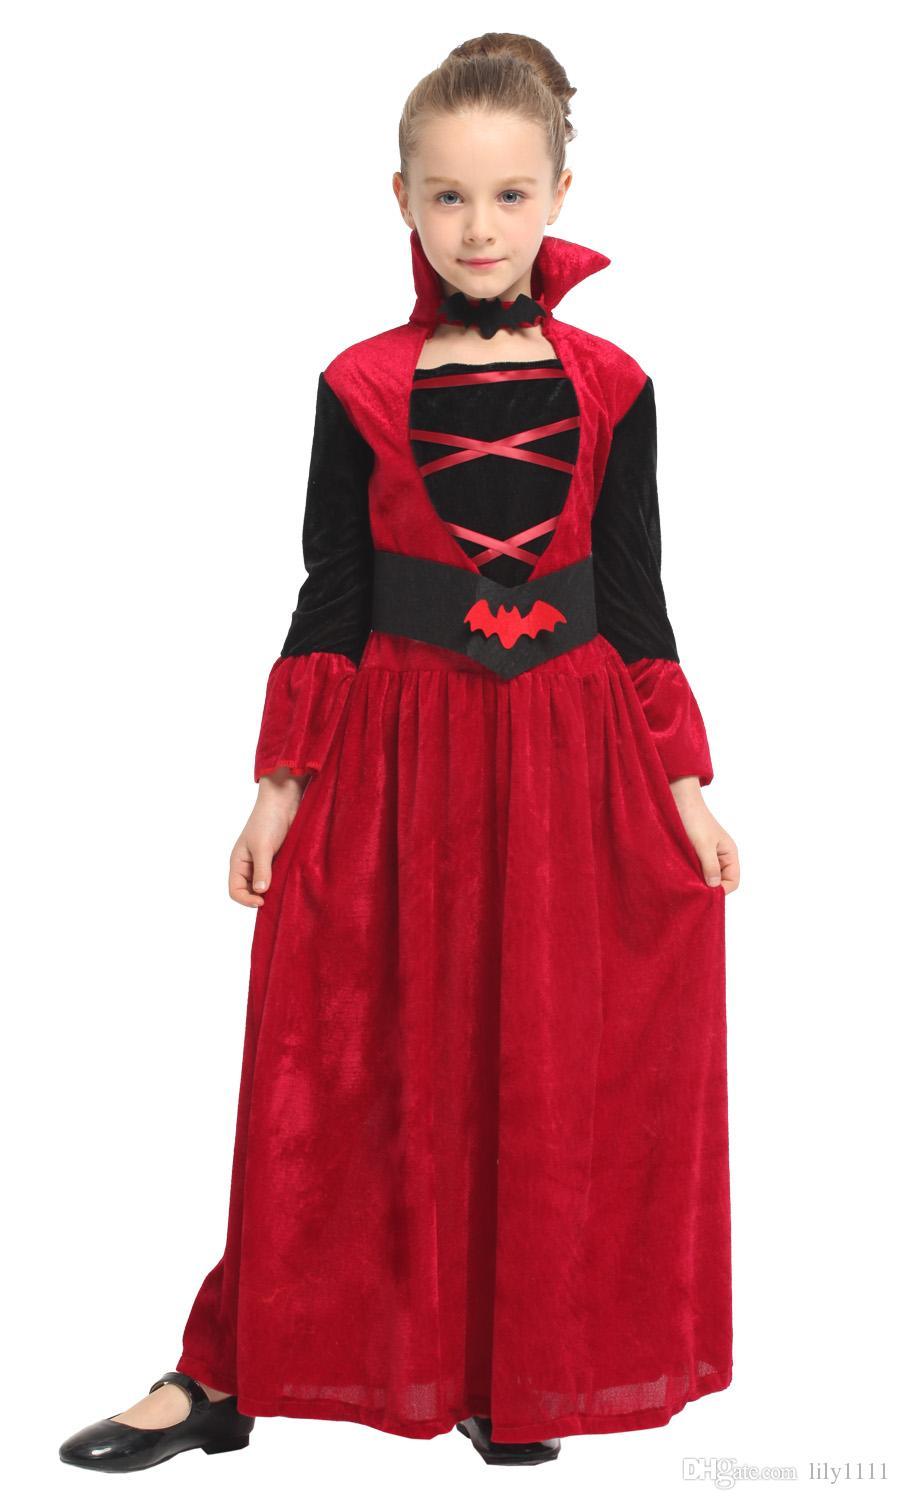 Halloween Vampire Costume Kids.Shanghai Story Girls Halloween Vampire Costumes For Kids Children Queen Cosplays Carnival Purim Parade Masquerade Party Dress